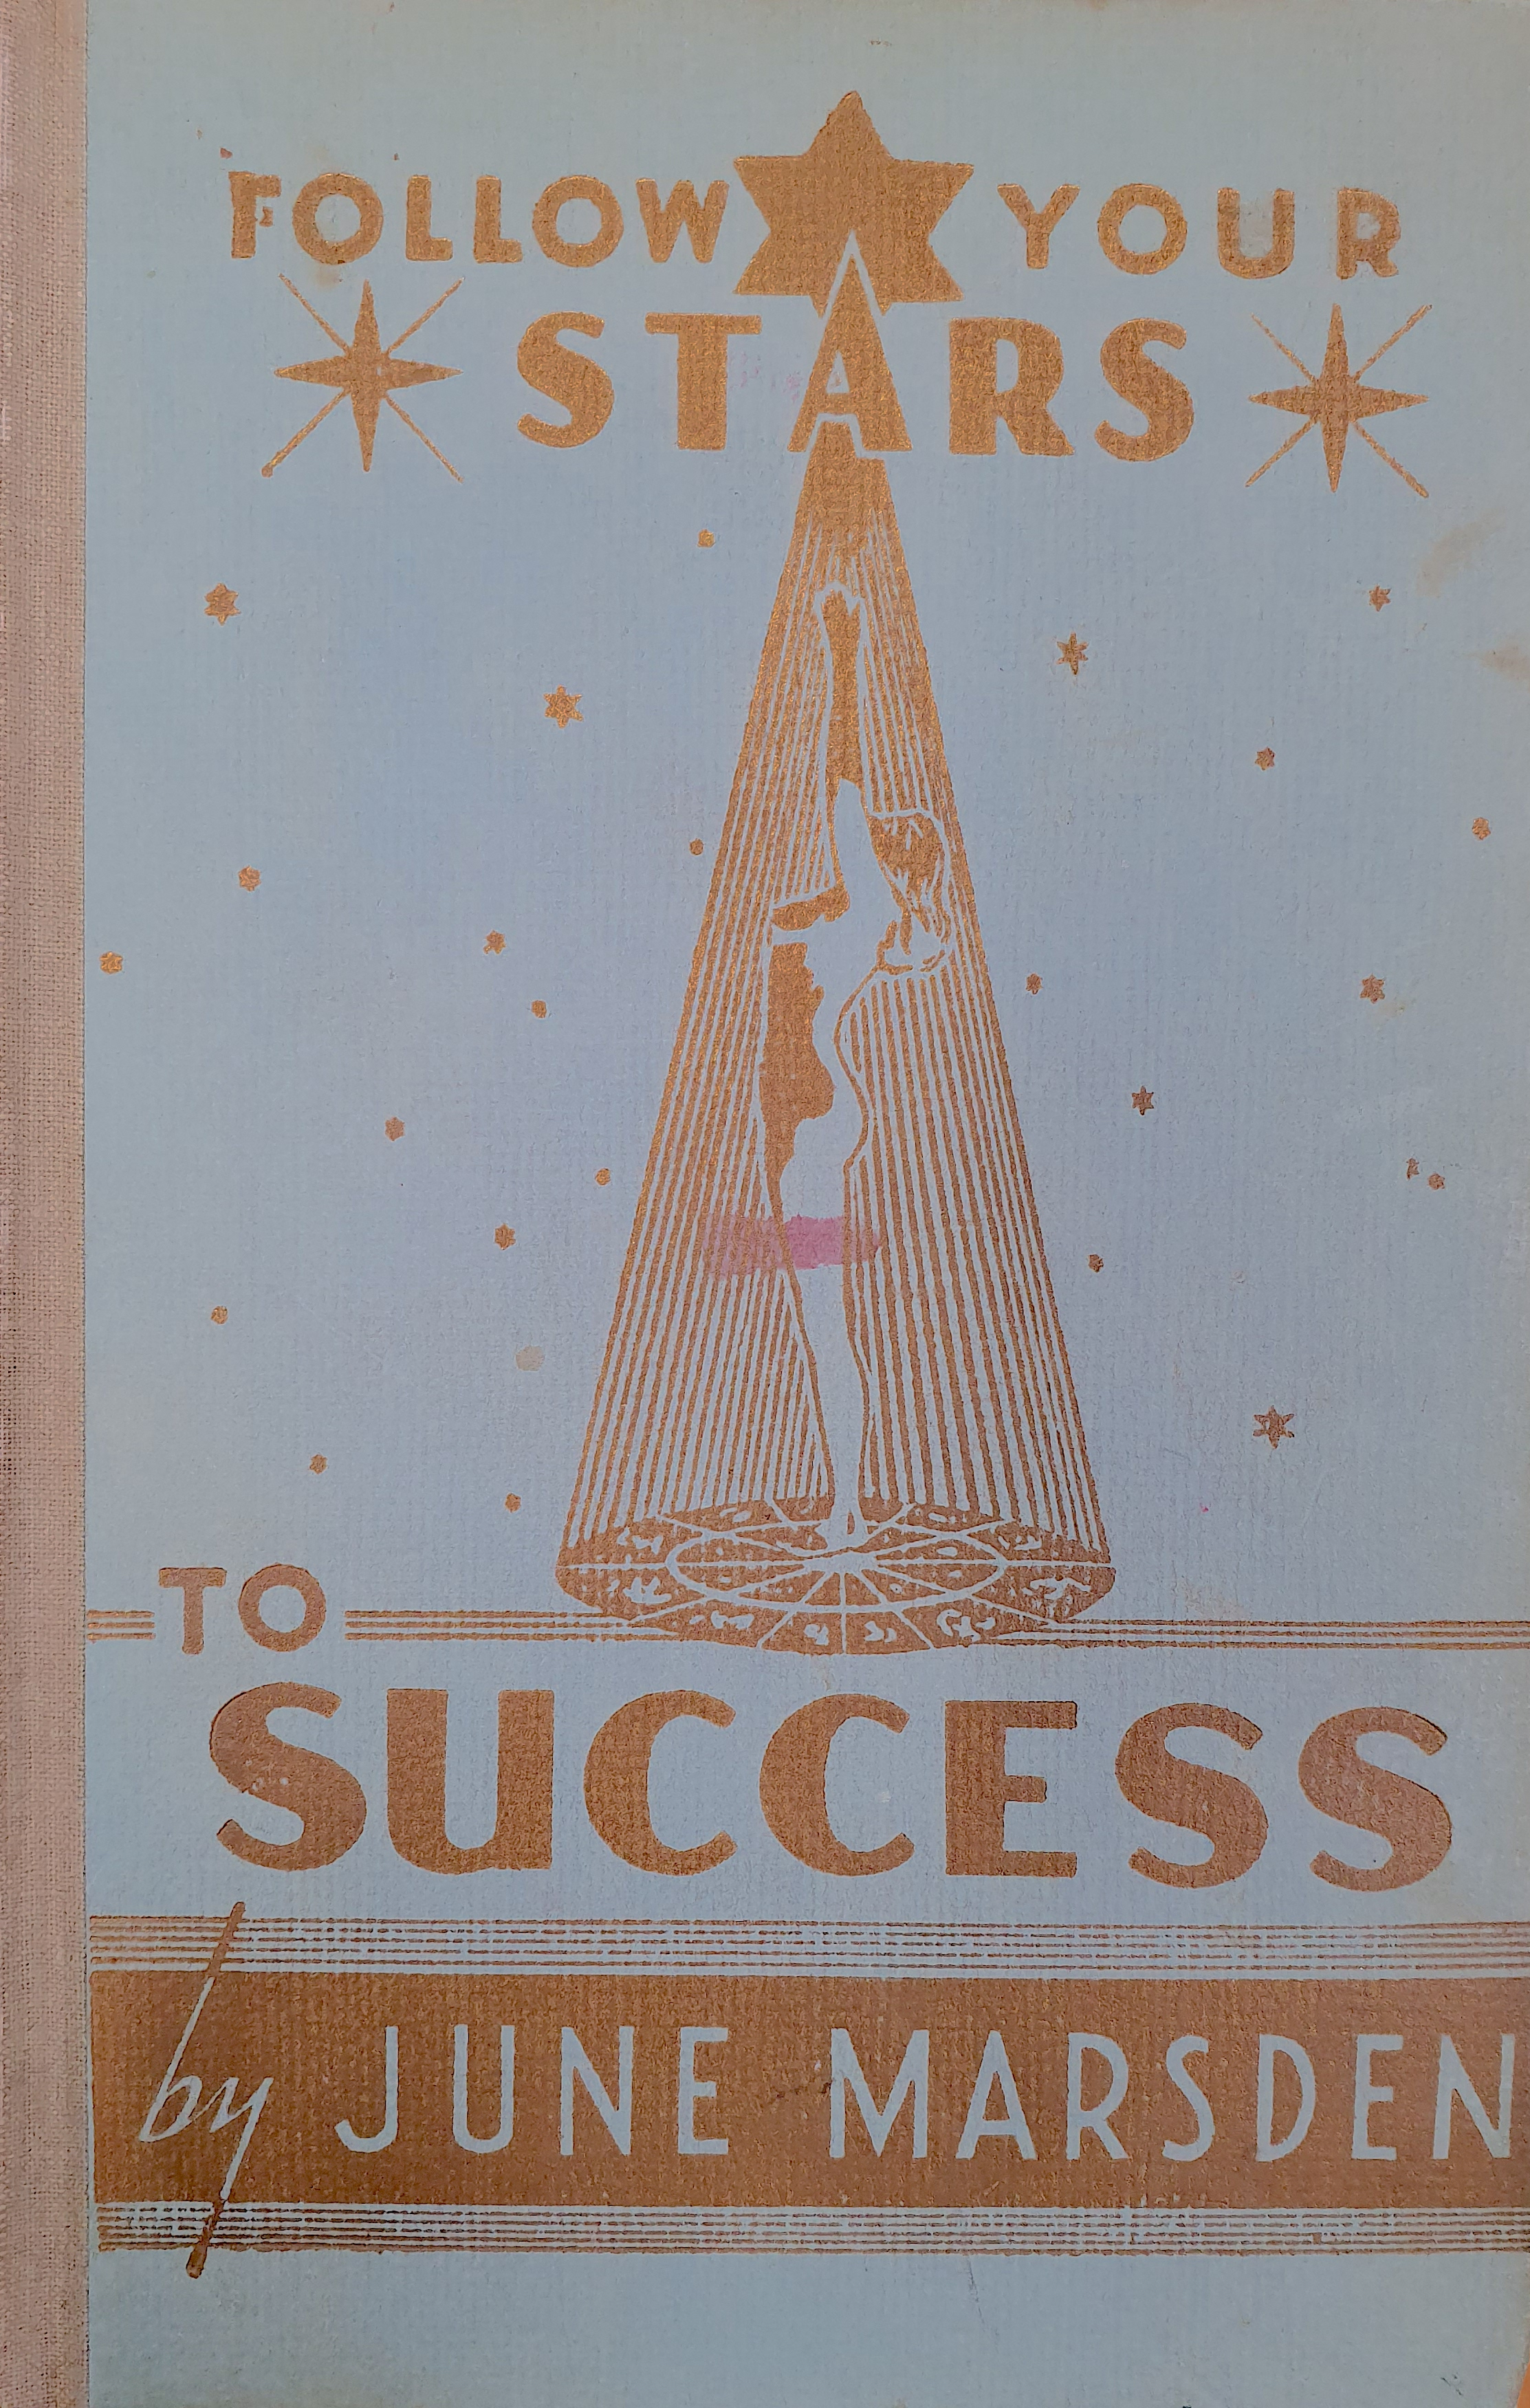 'Follow your stars to success' by June Marsden